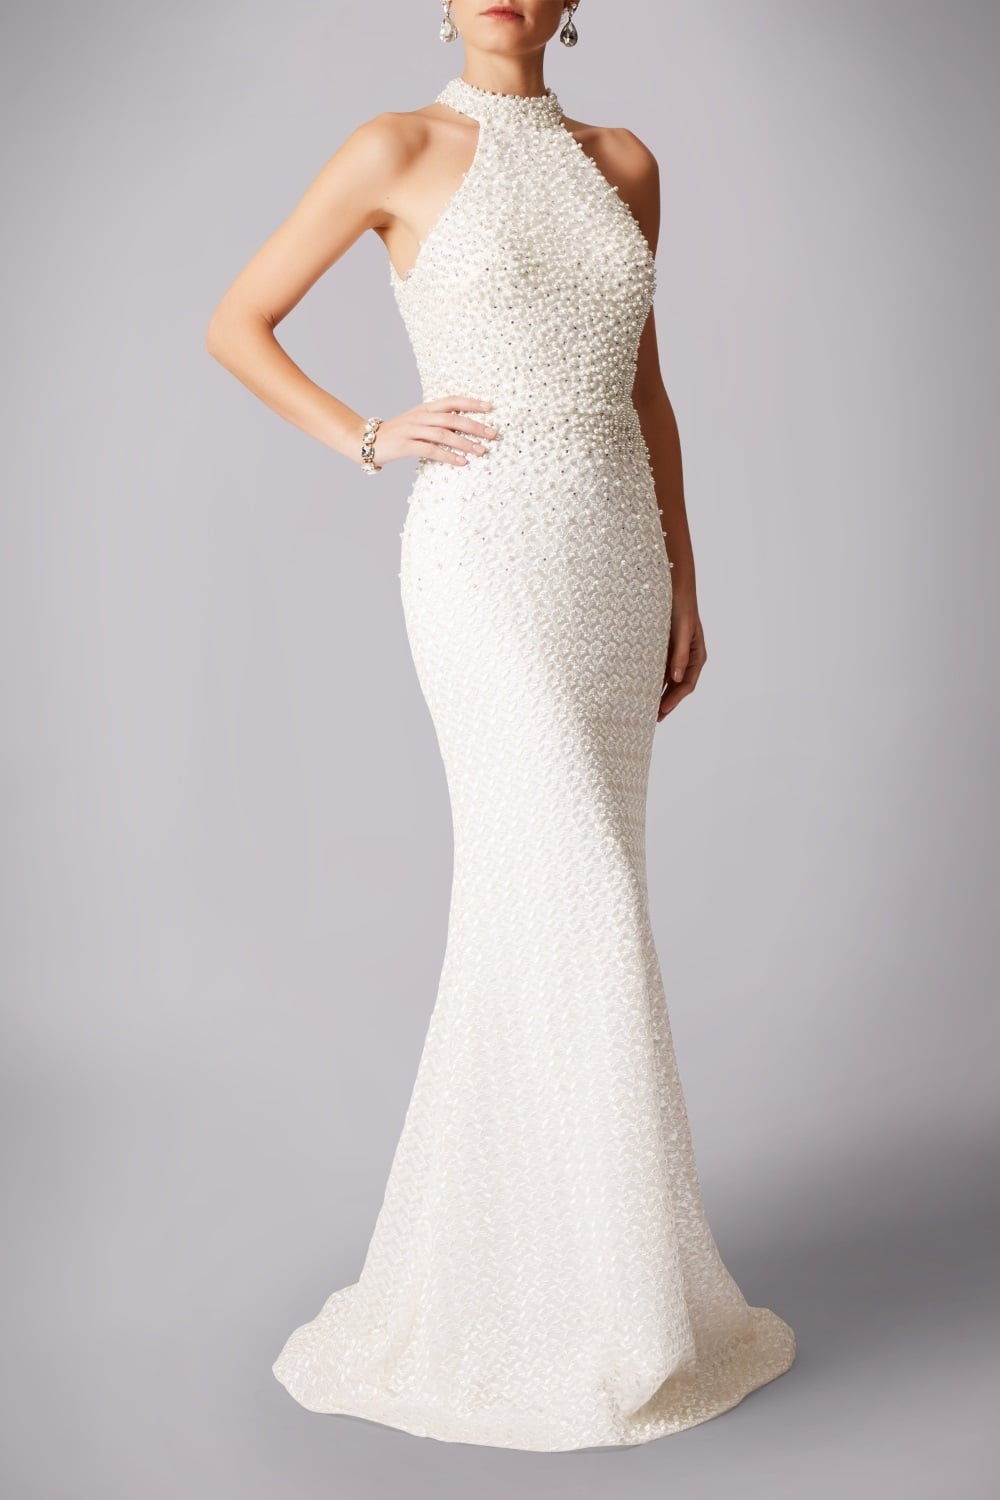 Mascara wedding dress in ivory. Halterneck and pearl effect bead ...